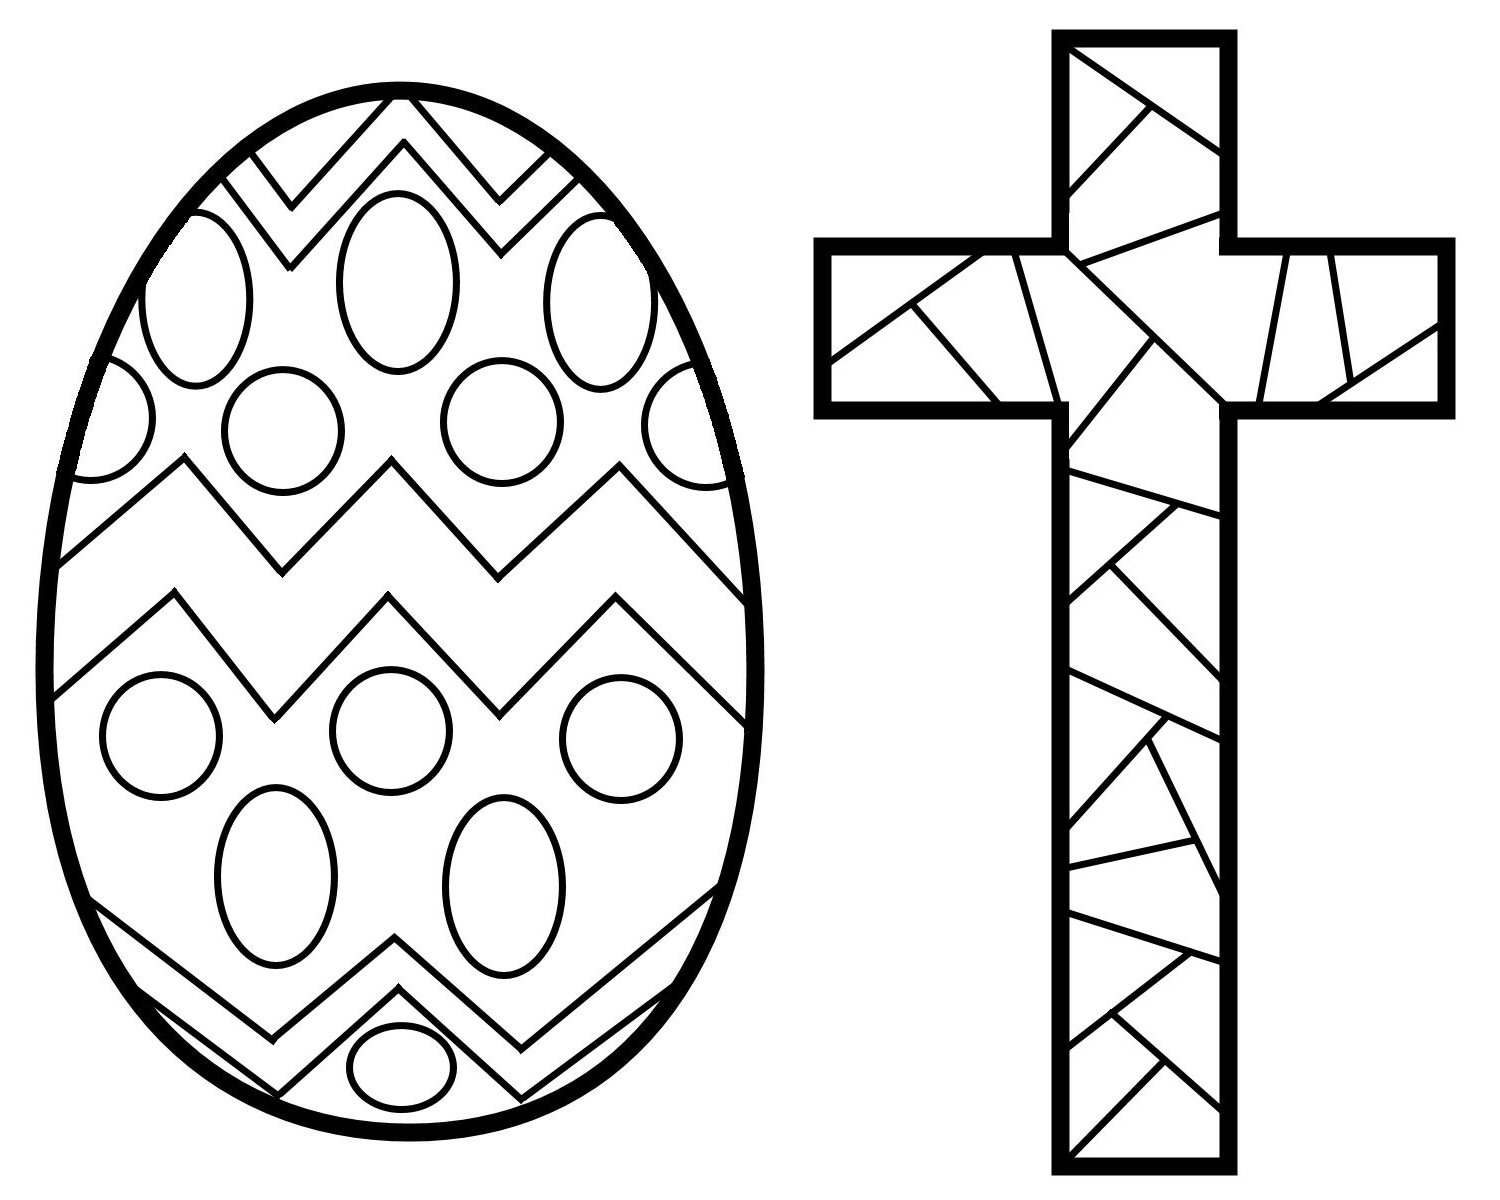 1500x1200 Easter Cross Coloring Pages Stained Glass Free Printable Within